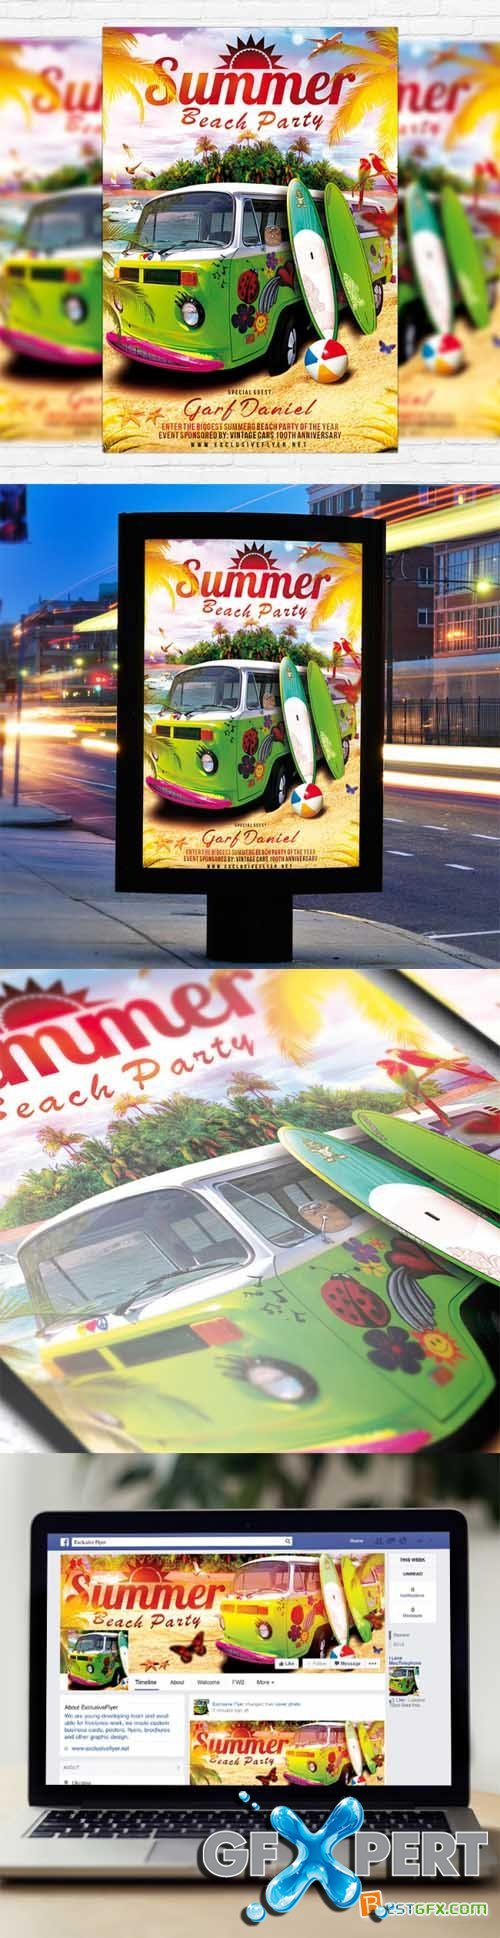 Flyer Template - Summer Beach Party 2 + Facebook Cover